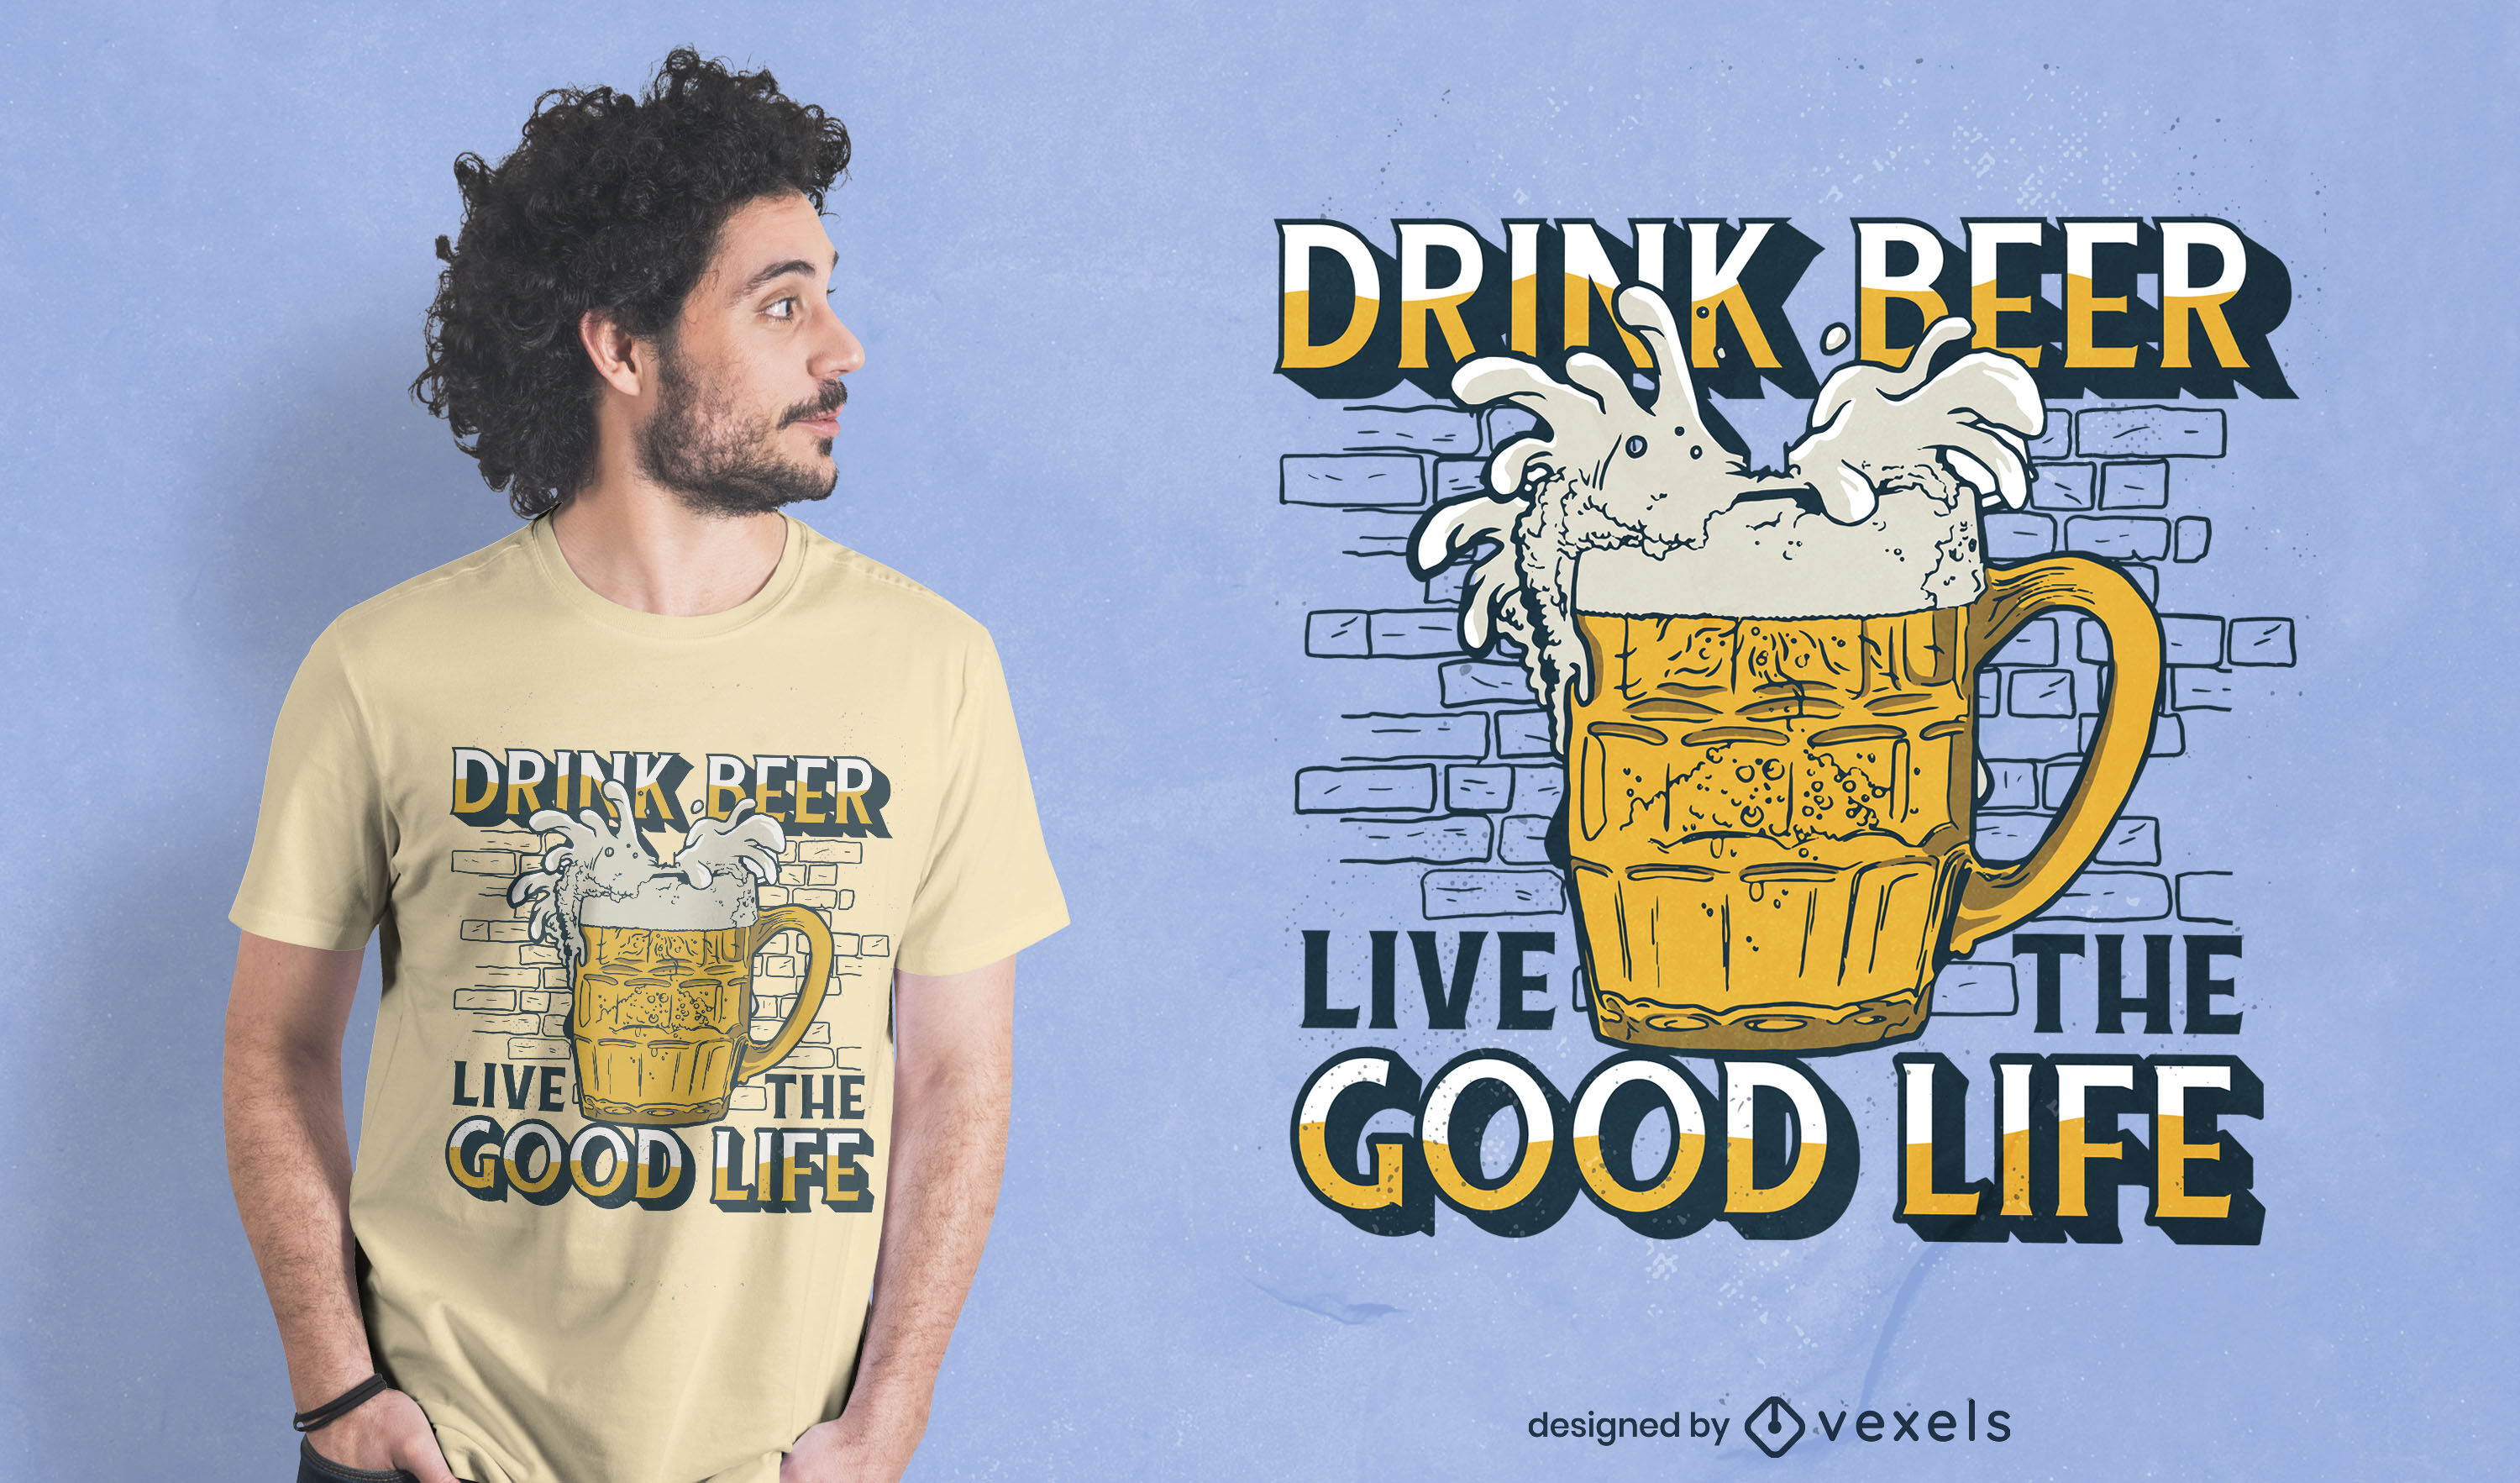 Beer alcoholic drink quote t-shirt design